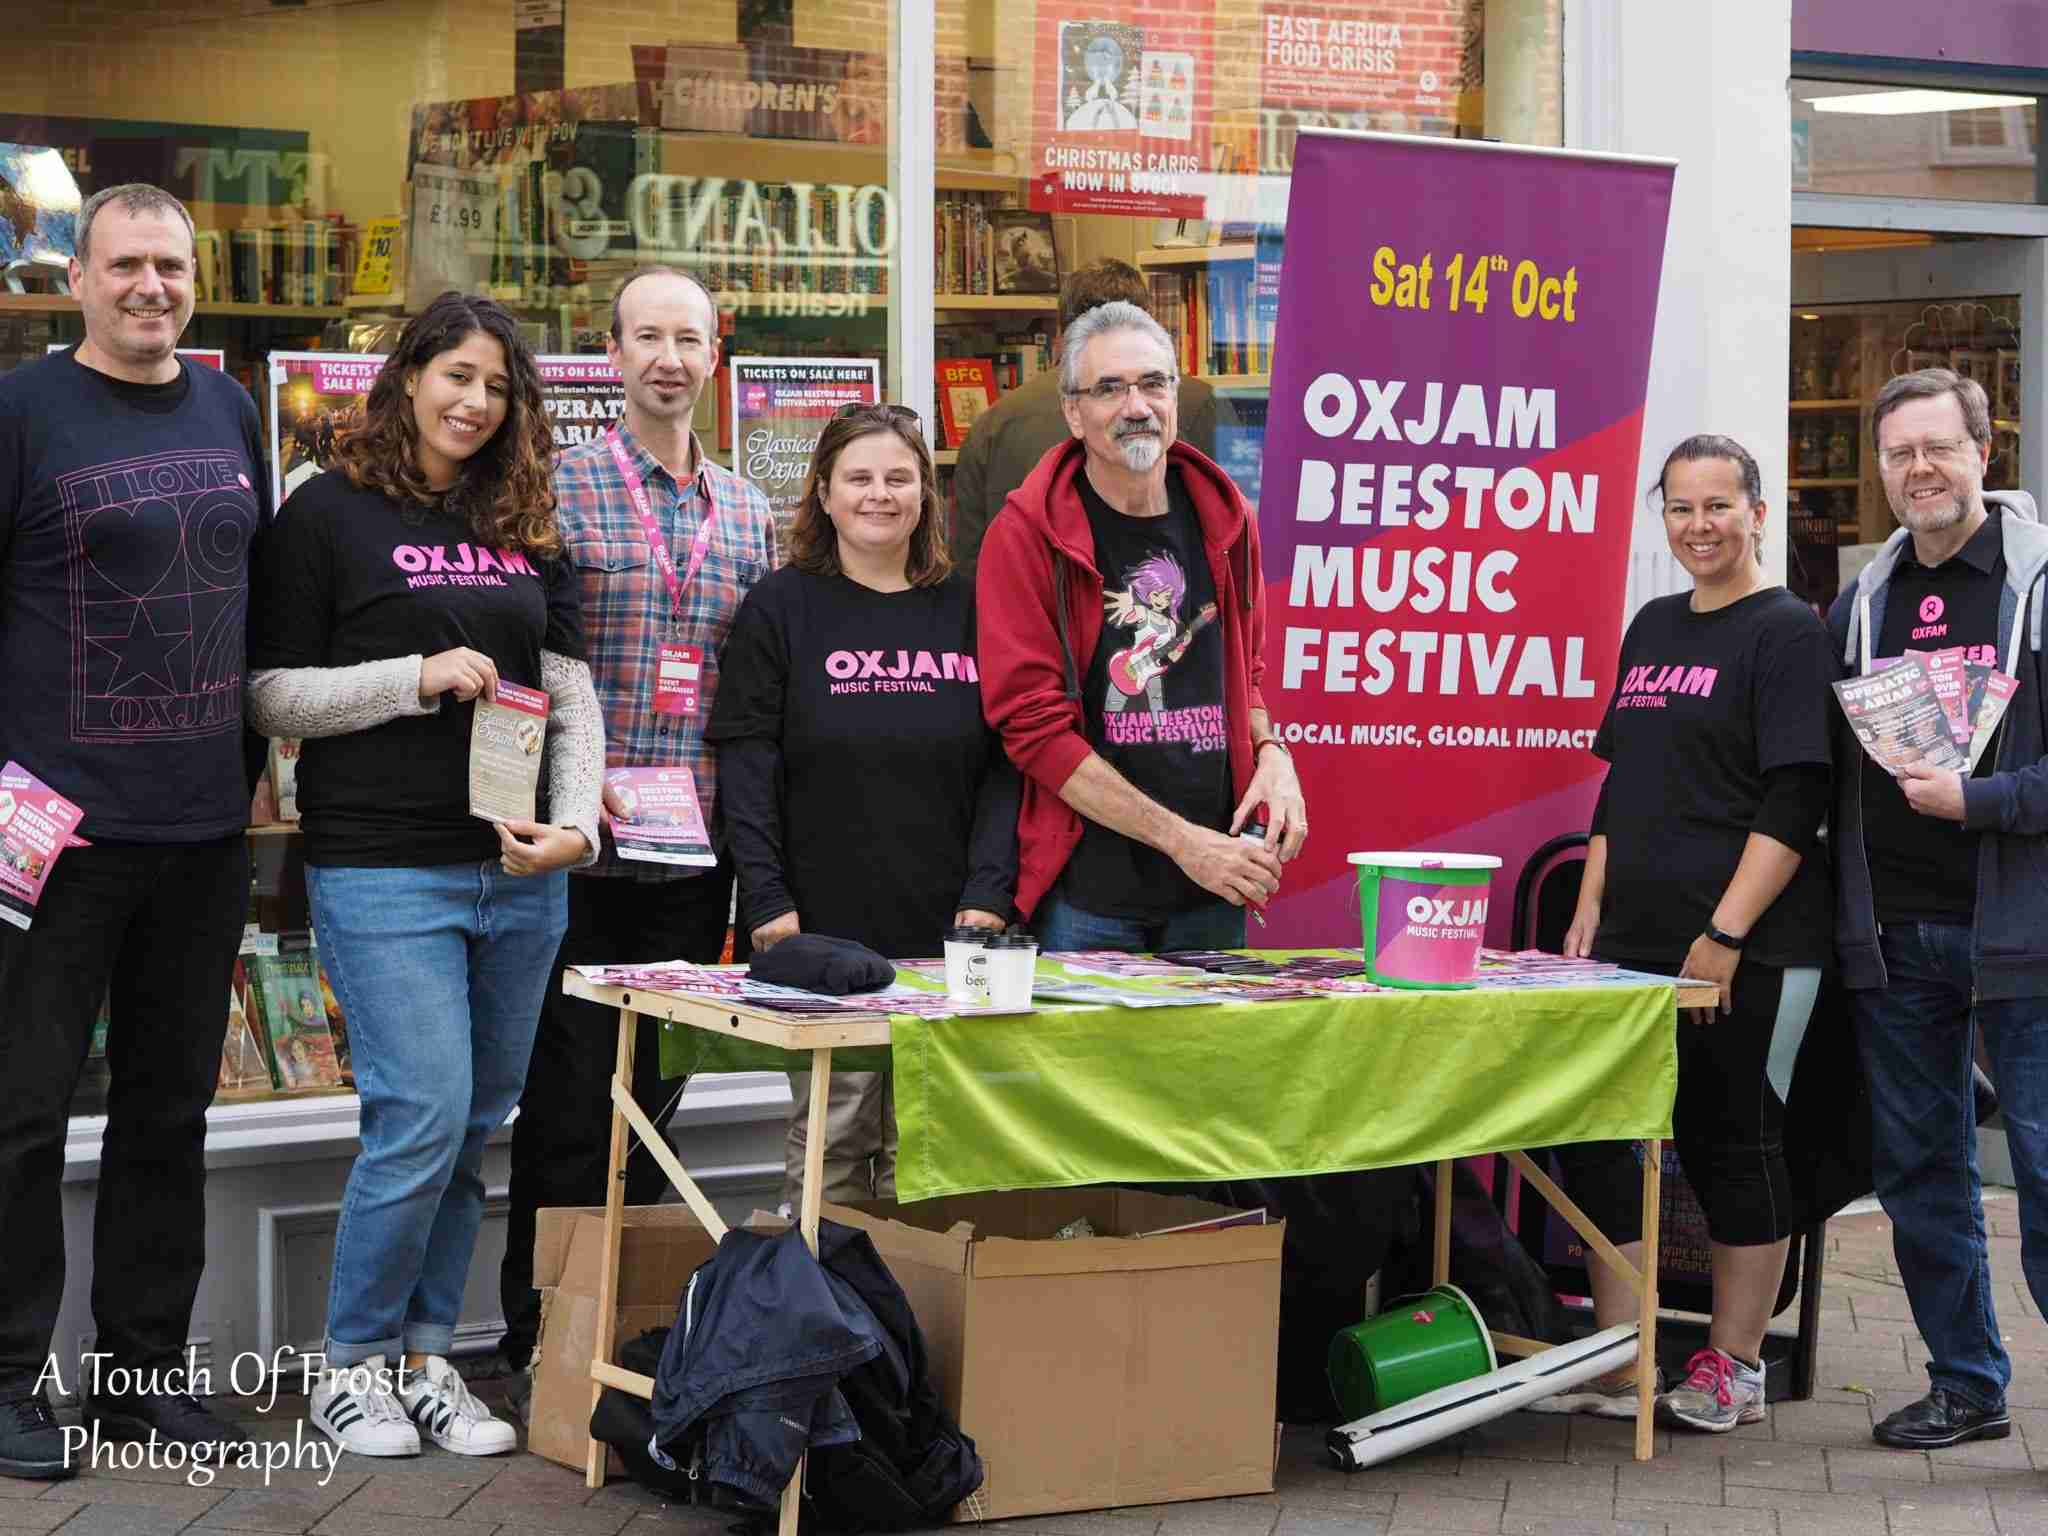 OXJAM: Beeston Takeover